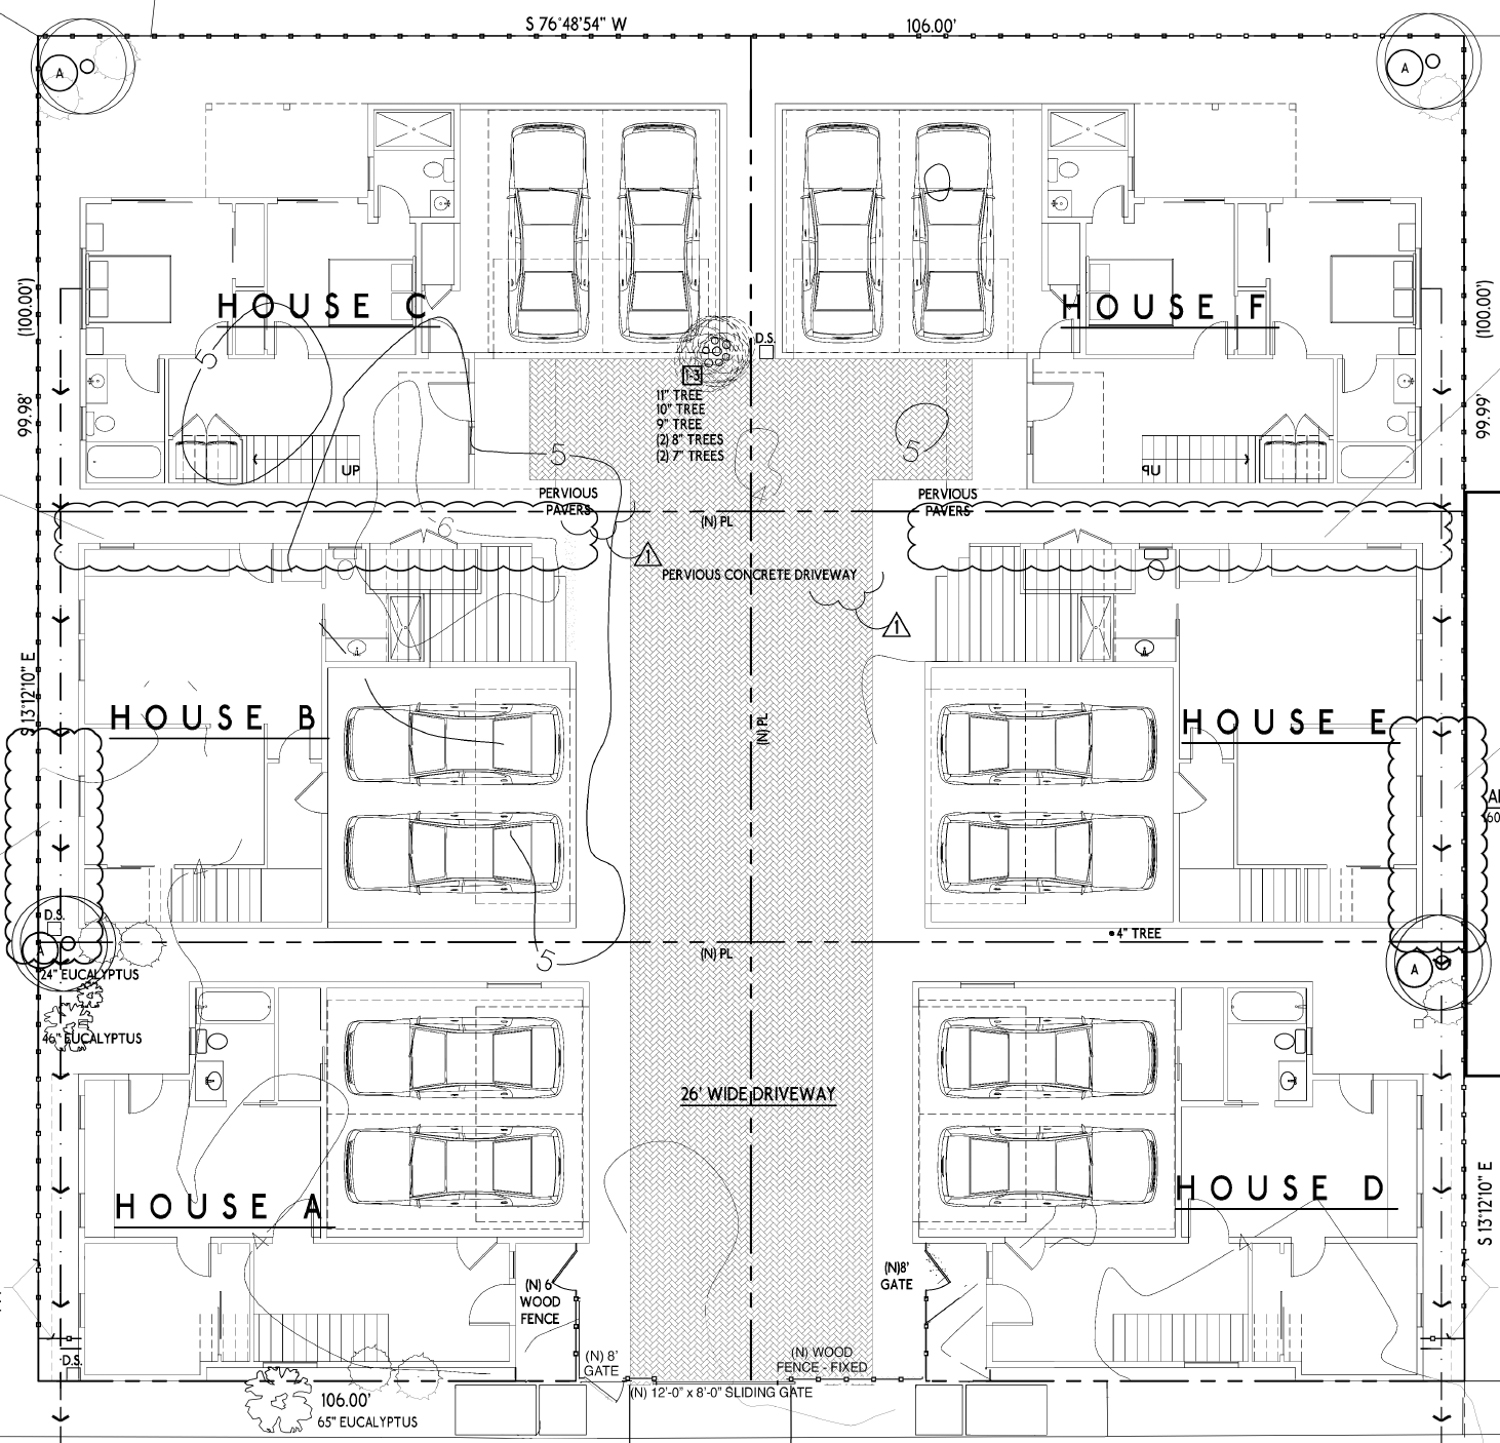 1608-1618 32nd Street, elevation drawing by ReMod Homes